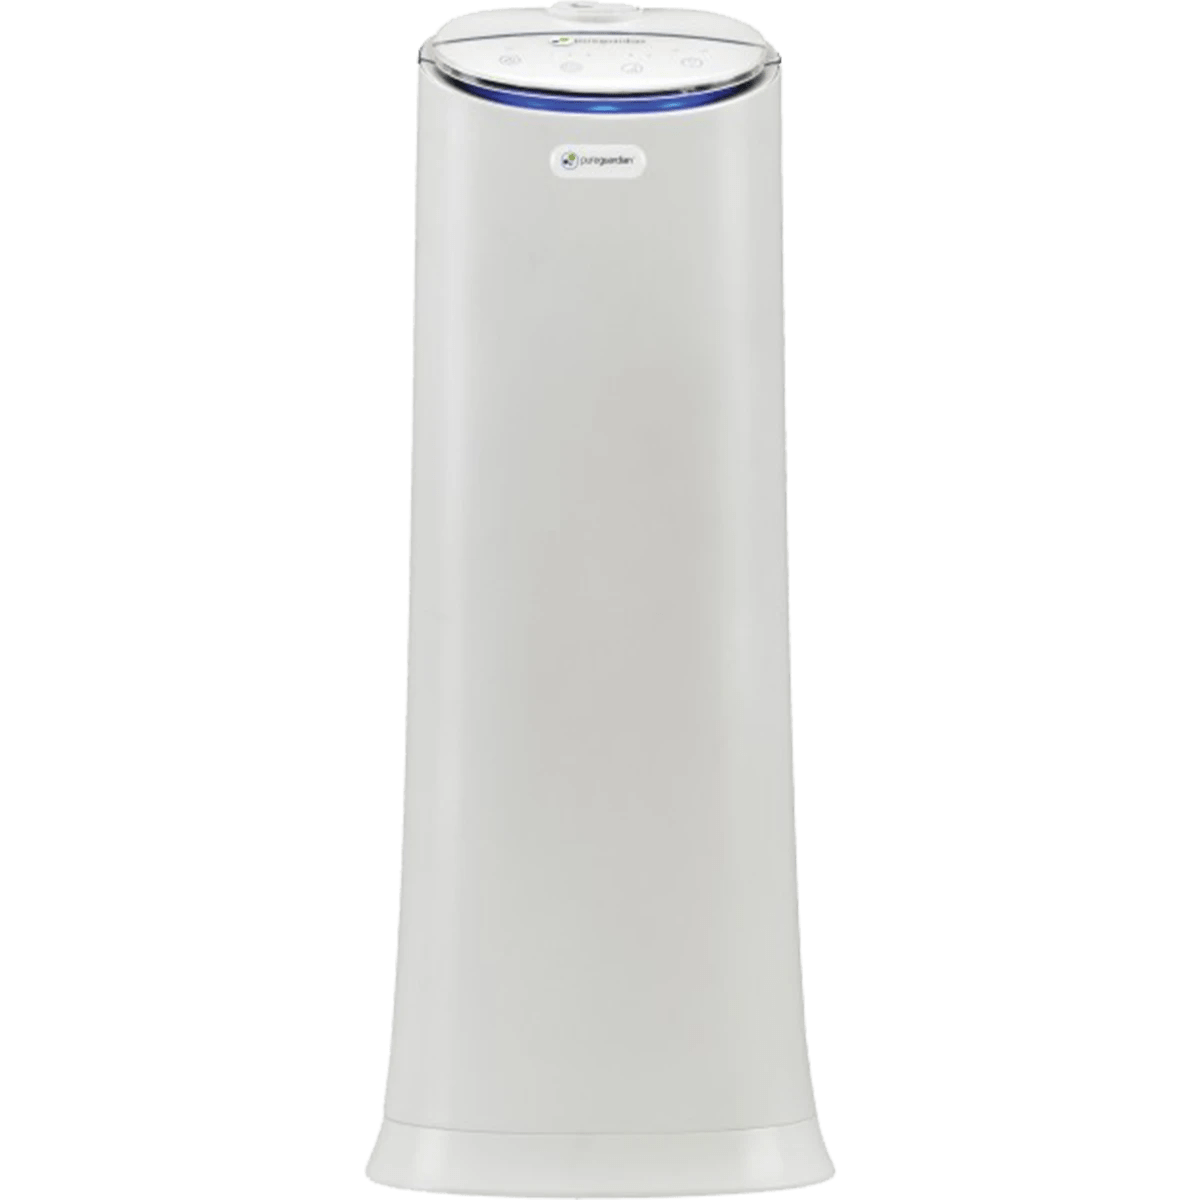 hight resolution of pureguardian 100 hour ultrasonic cool mist tower humidifier w aroma tray front